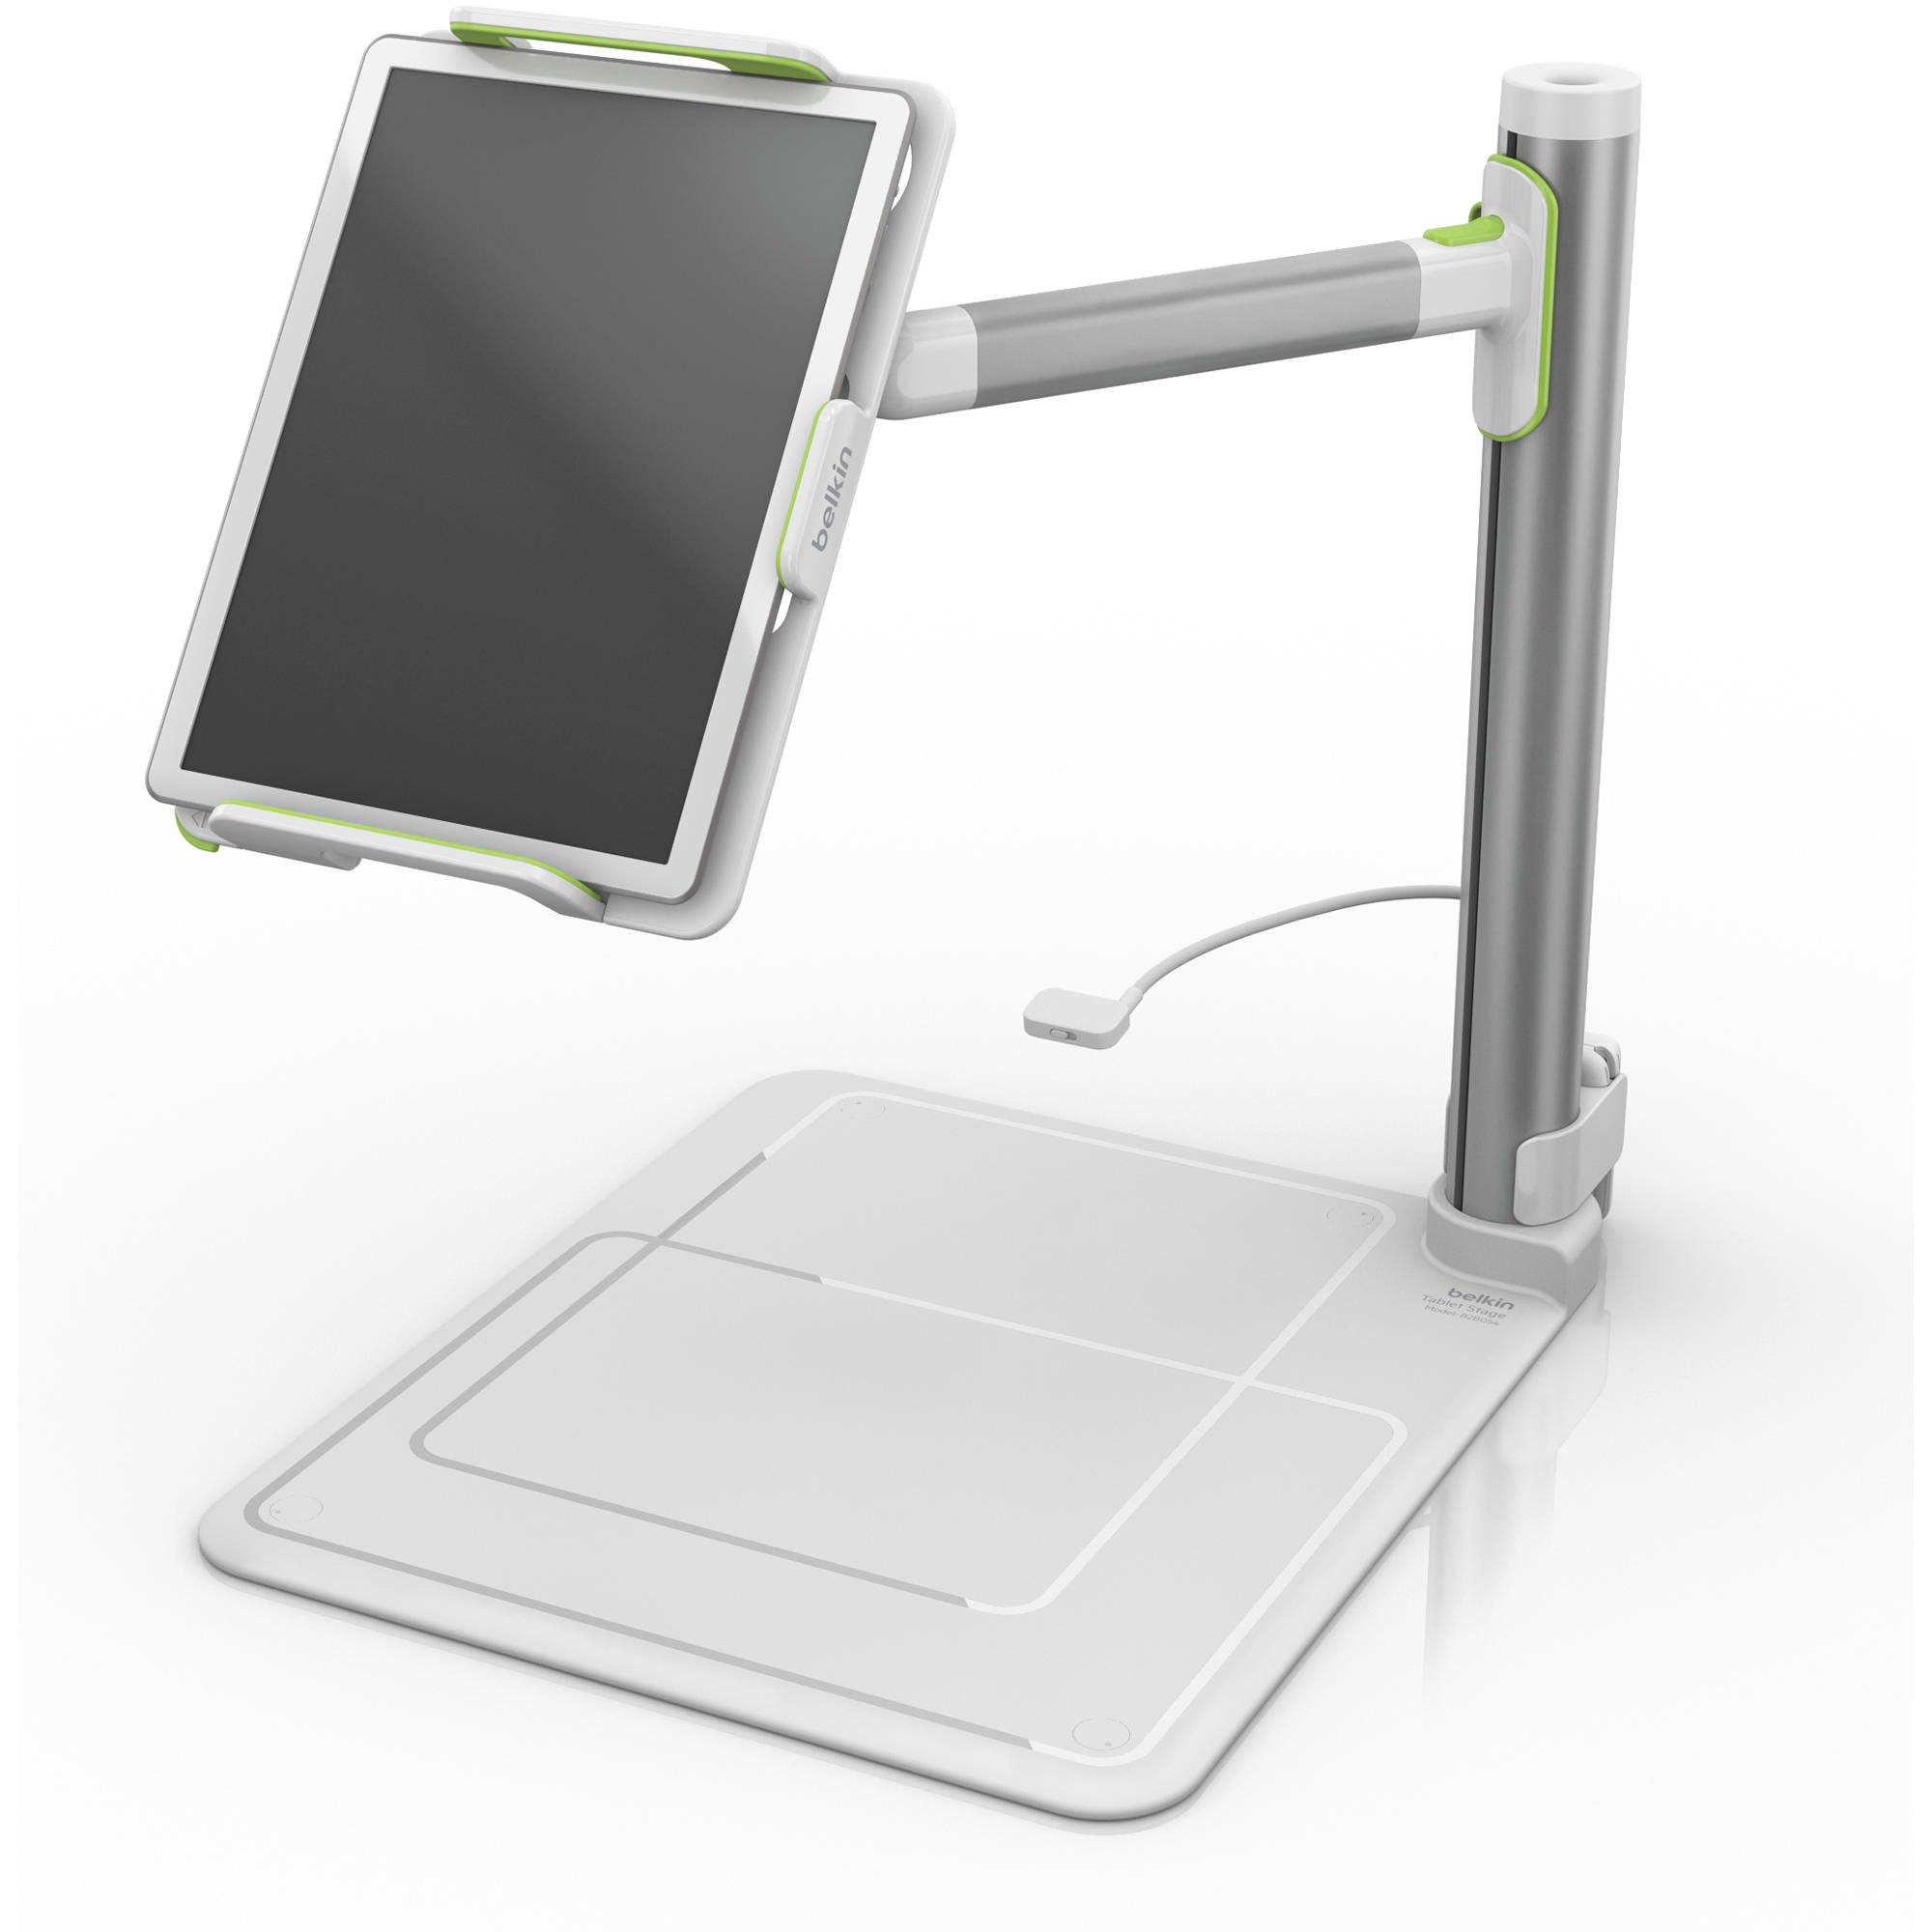 Belkin tablet stage stand b2b054 b h photo video for Stand 2 b